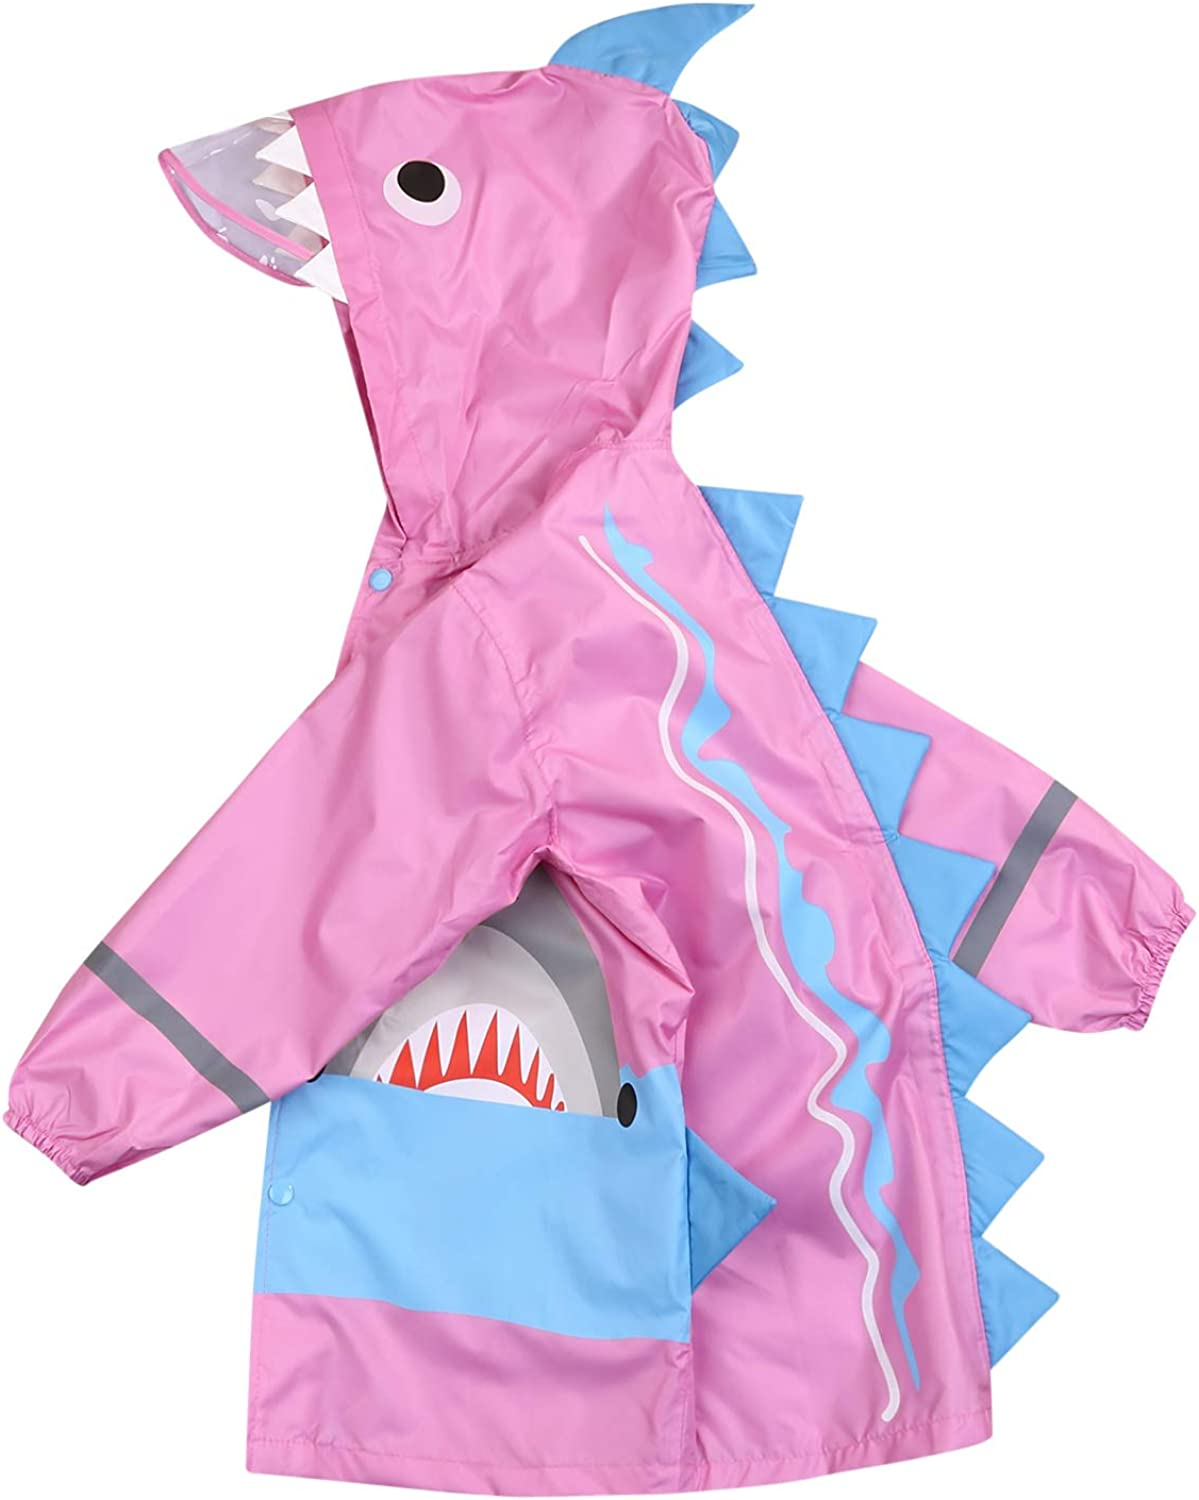 Kid's Raincoat 3D Shark Rainwear Lightweight Waterproof Hooded Coat Jacket Outwear Raincoat Hoodies